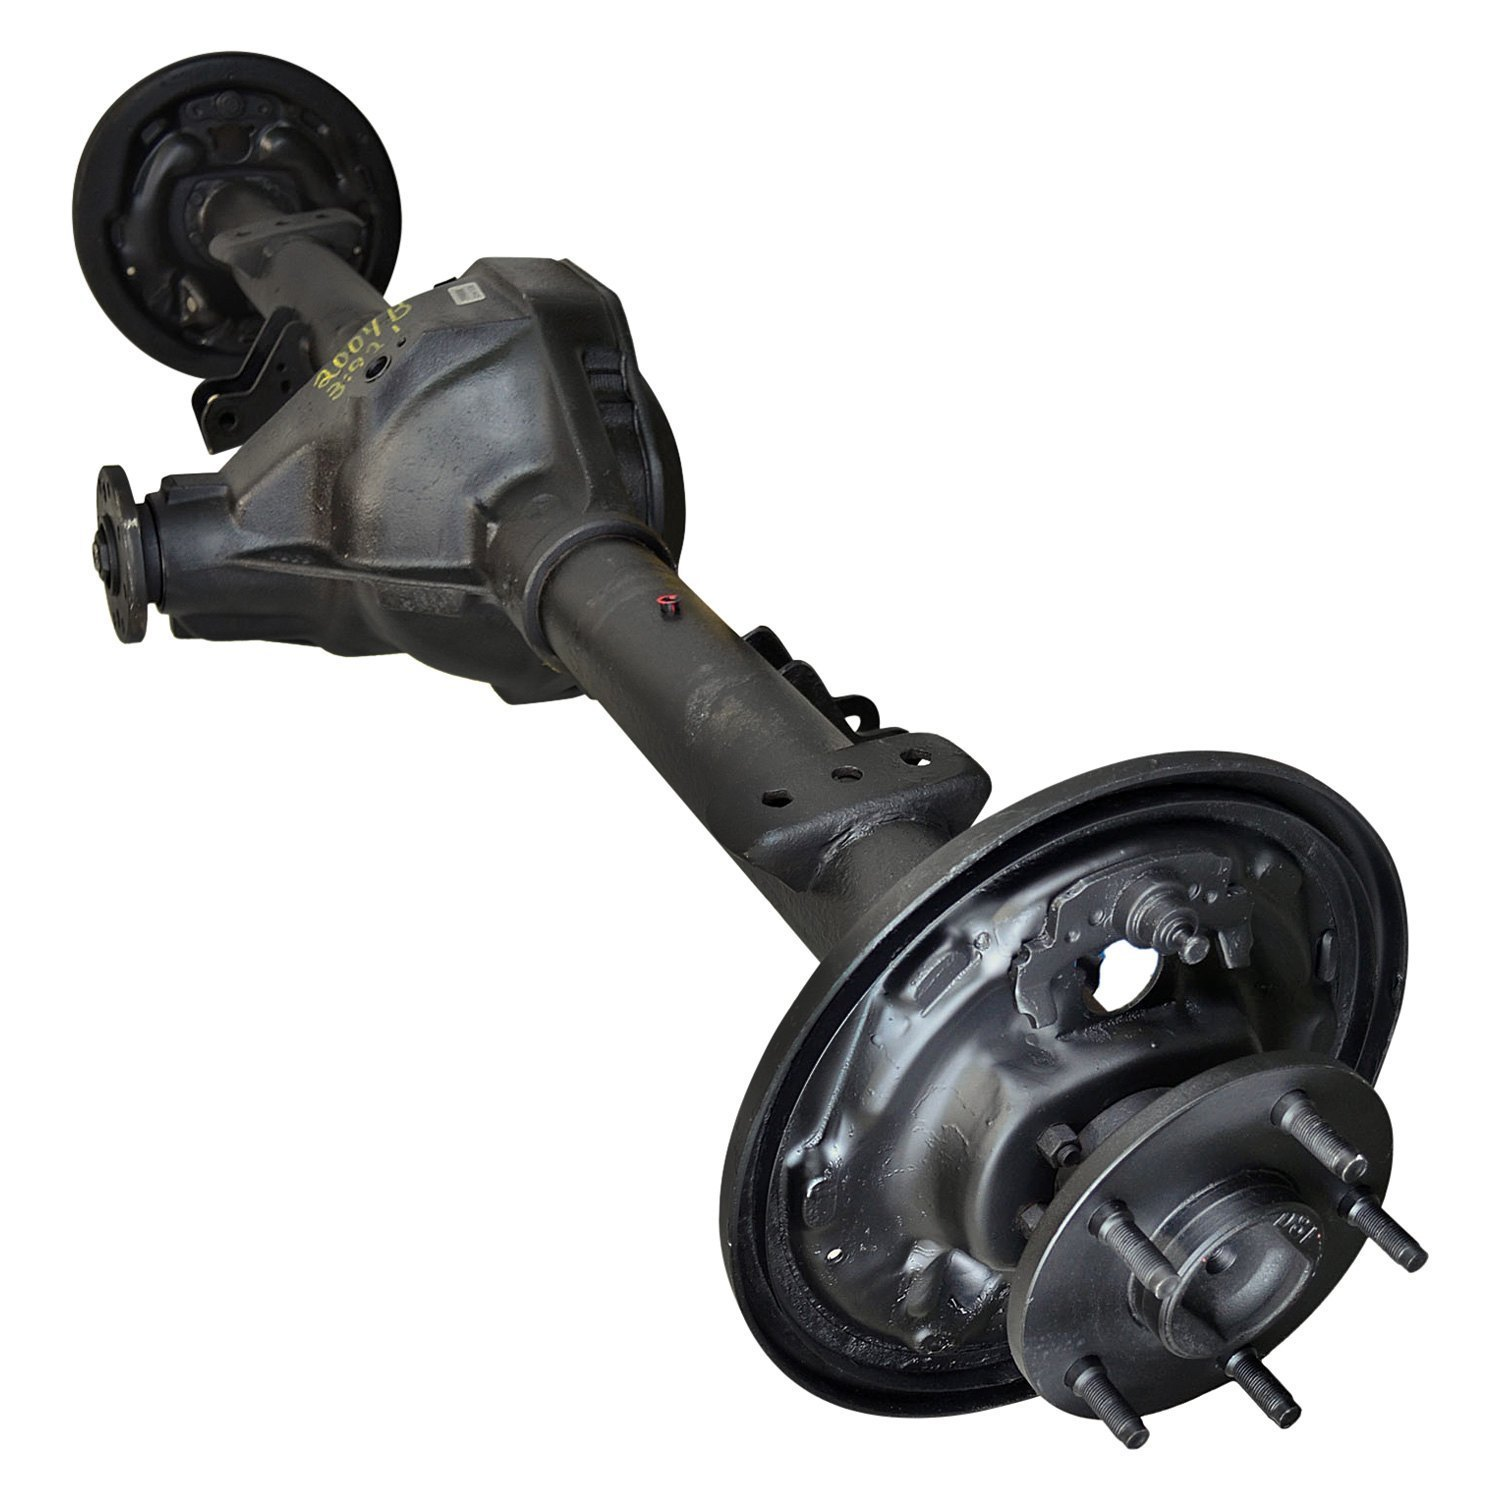 replace dodge ram 1500 rear drum brakes 2000 remanufactured rear axle assembly. Black Bedroom Furniture Sets. Home Design Ideas